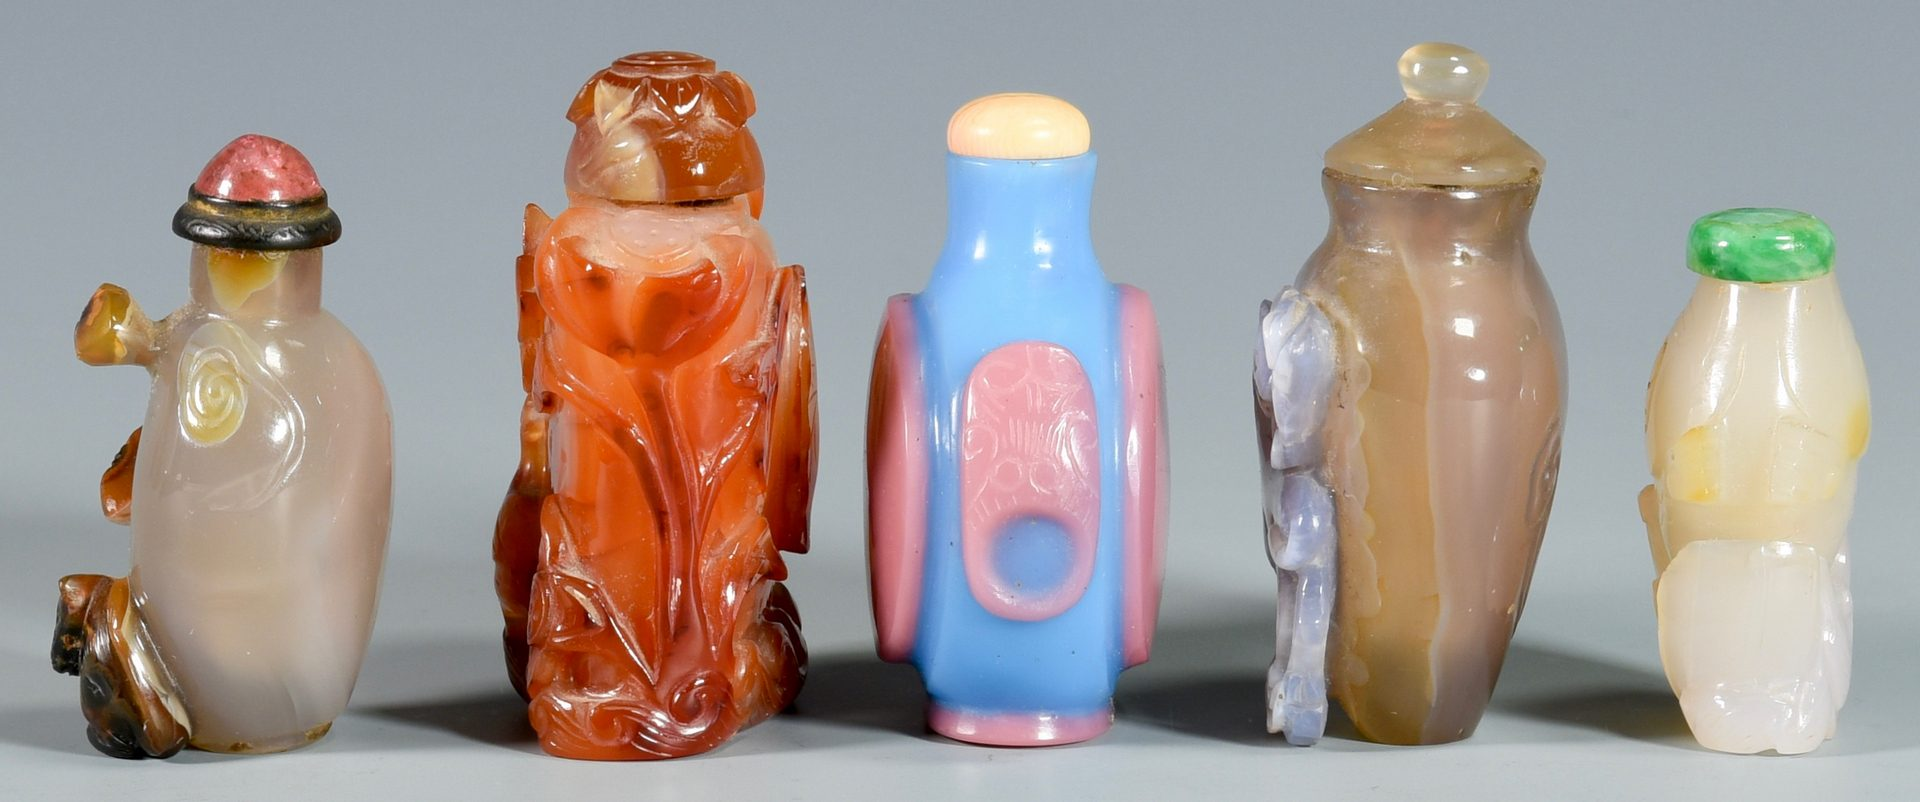 Lot 1: 5 Chinese Snuff Bottles inc. White Jade